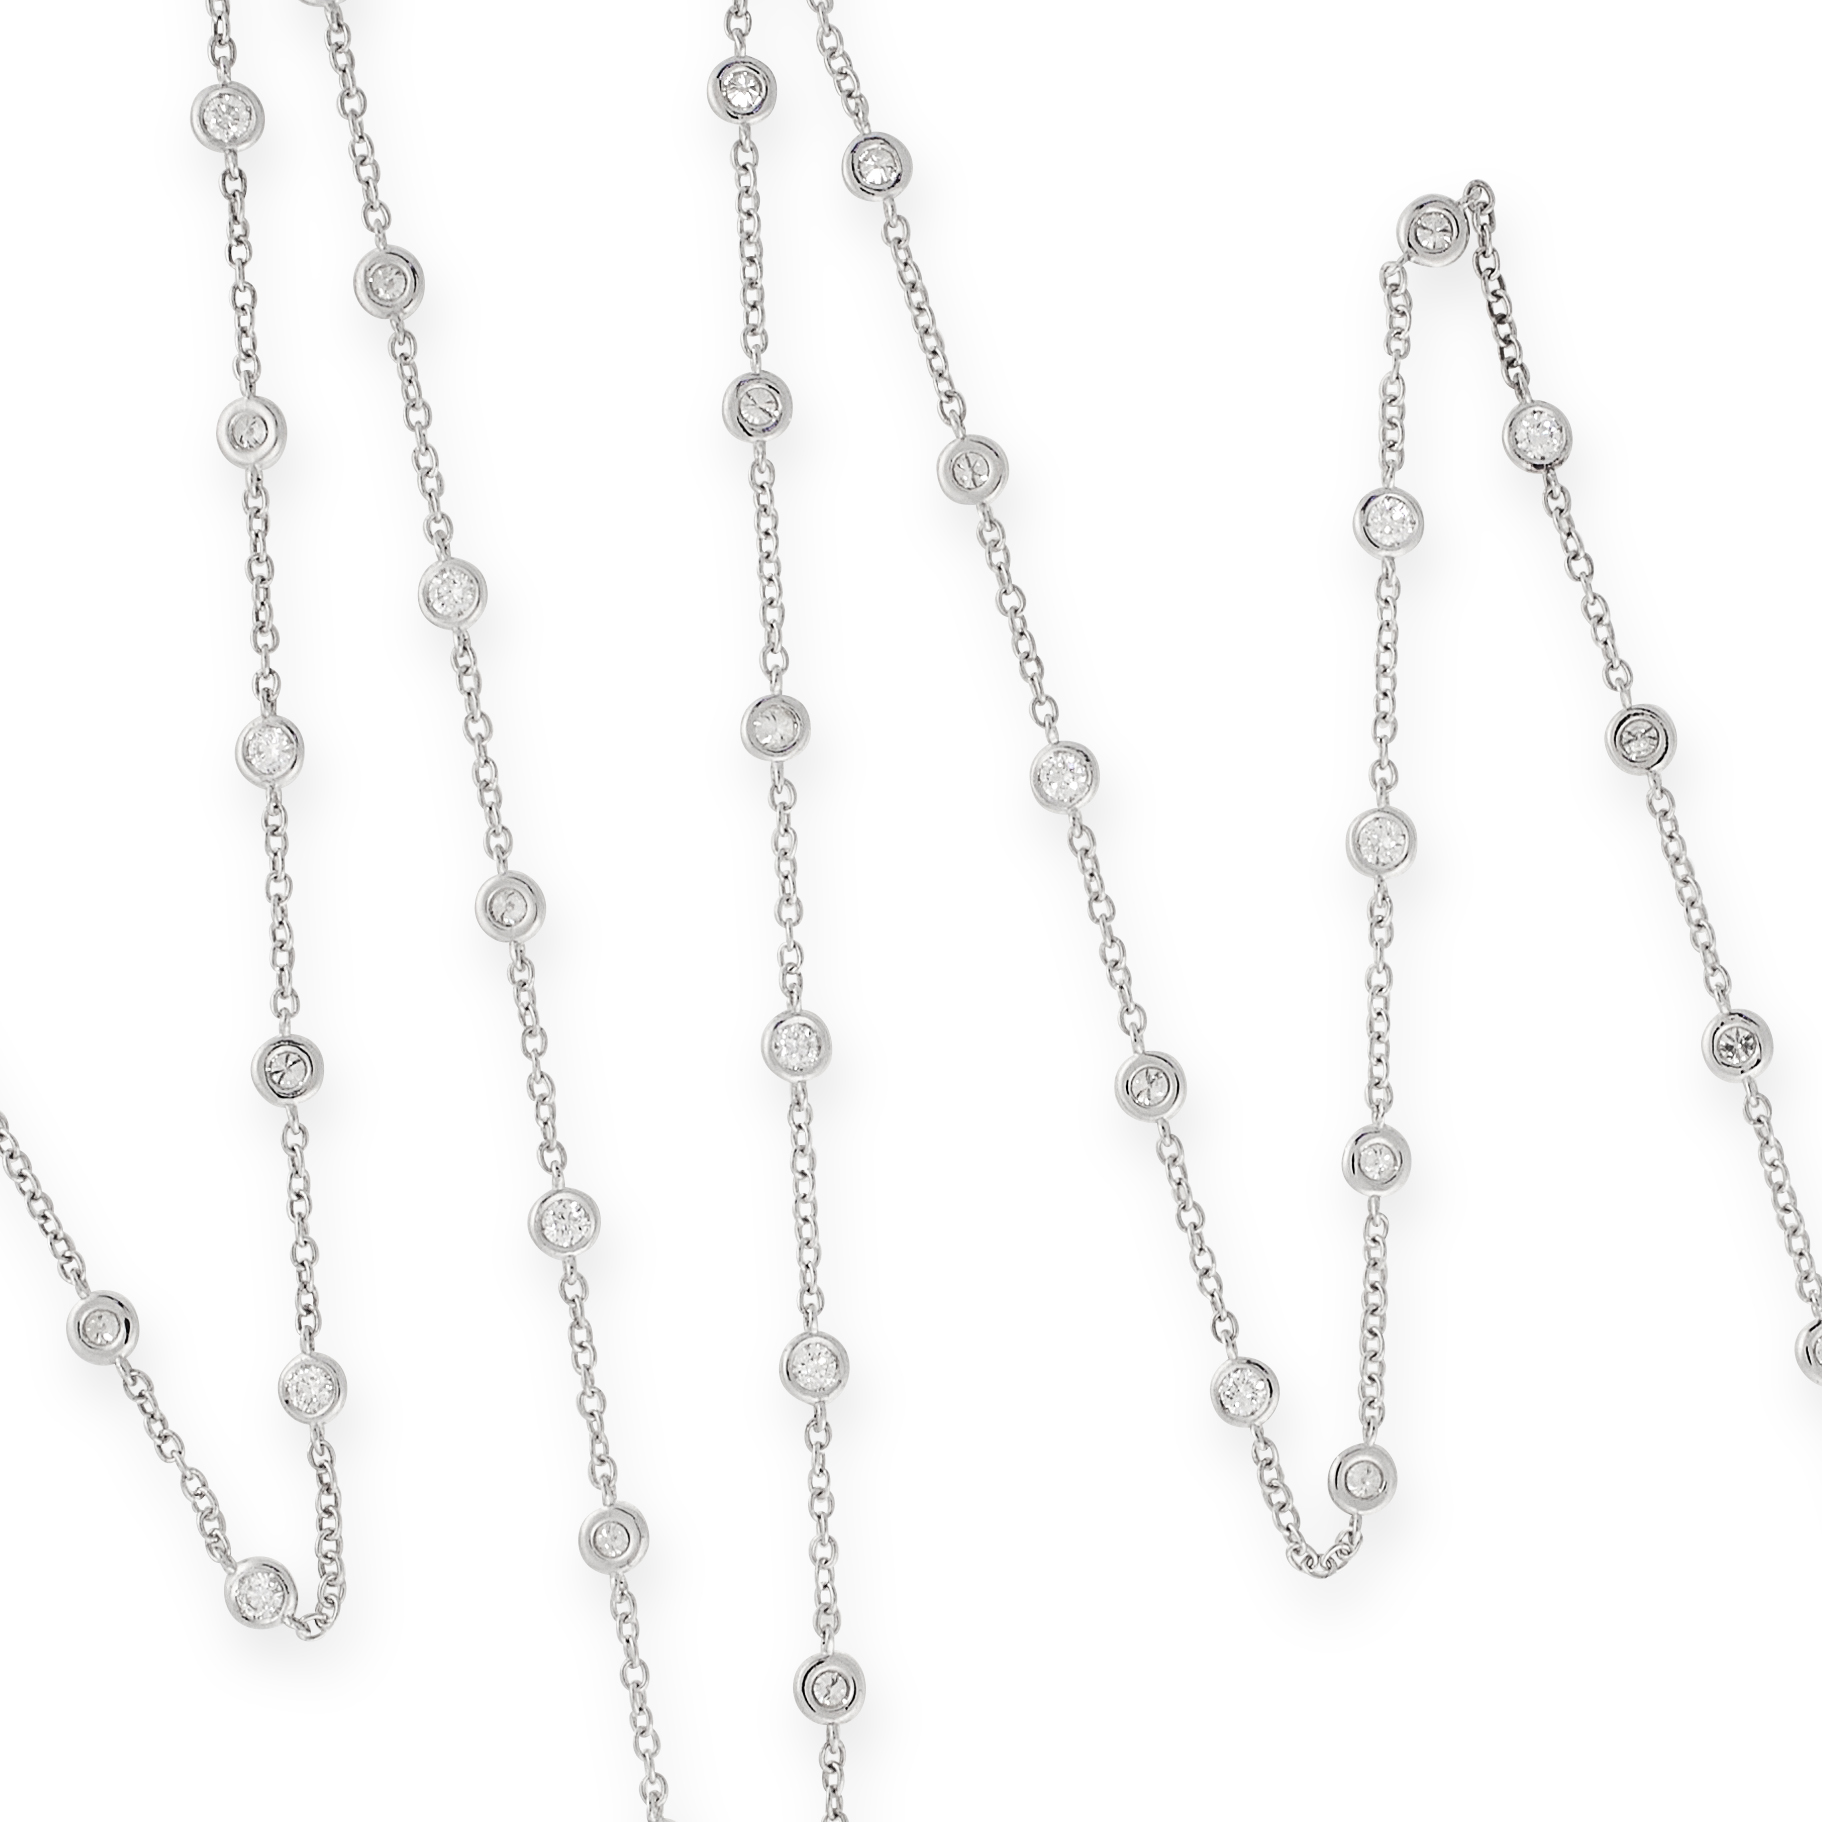 A DIAMOND LONGCHAIN NECKLACE in 18ct white gold, the chain set with forty-four round cut diamonds